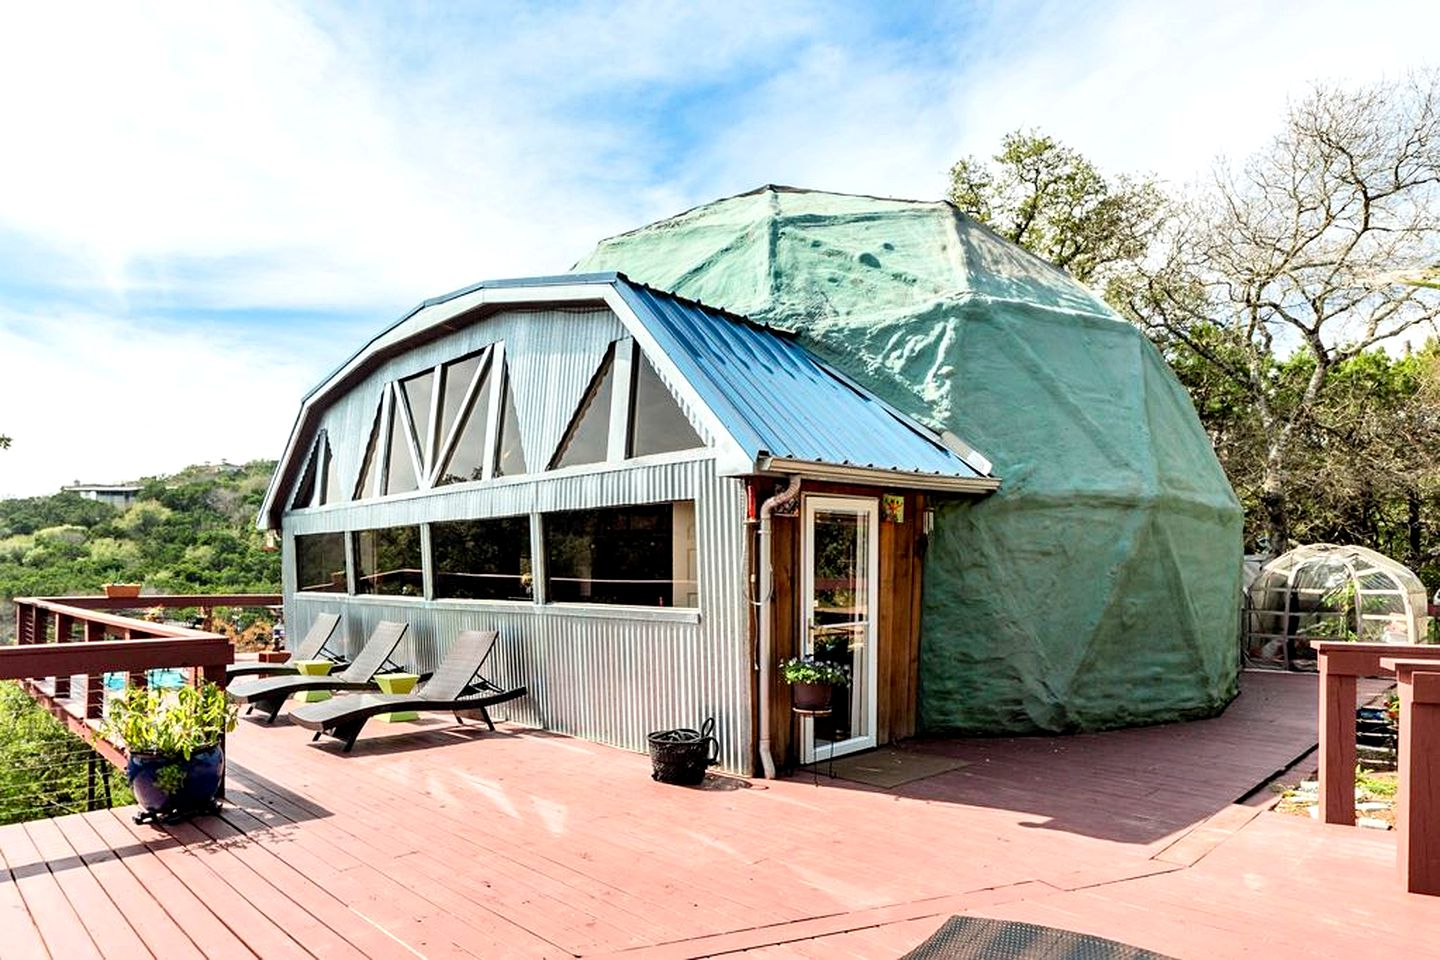 Glamping dome for amazing hot tub getaways in Austin.